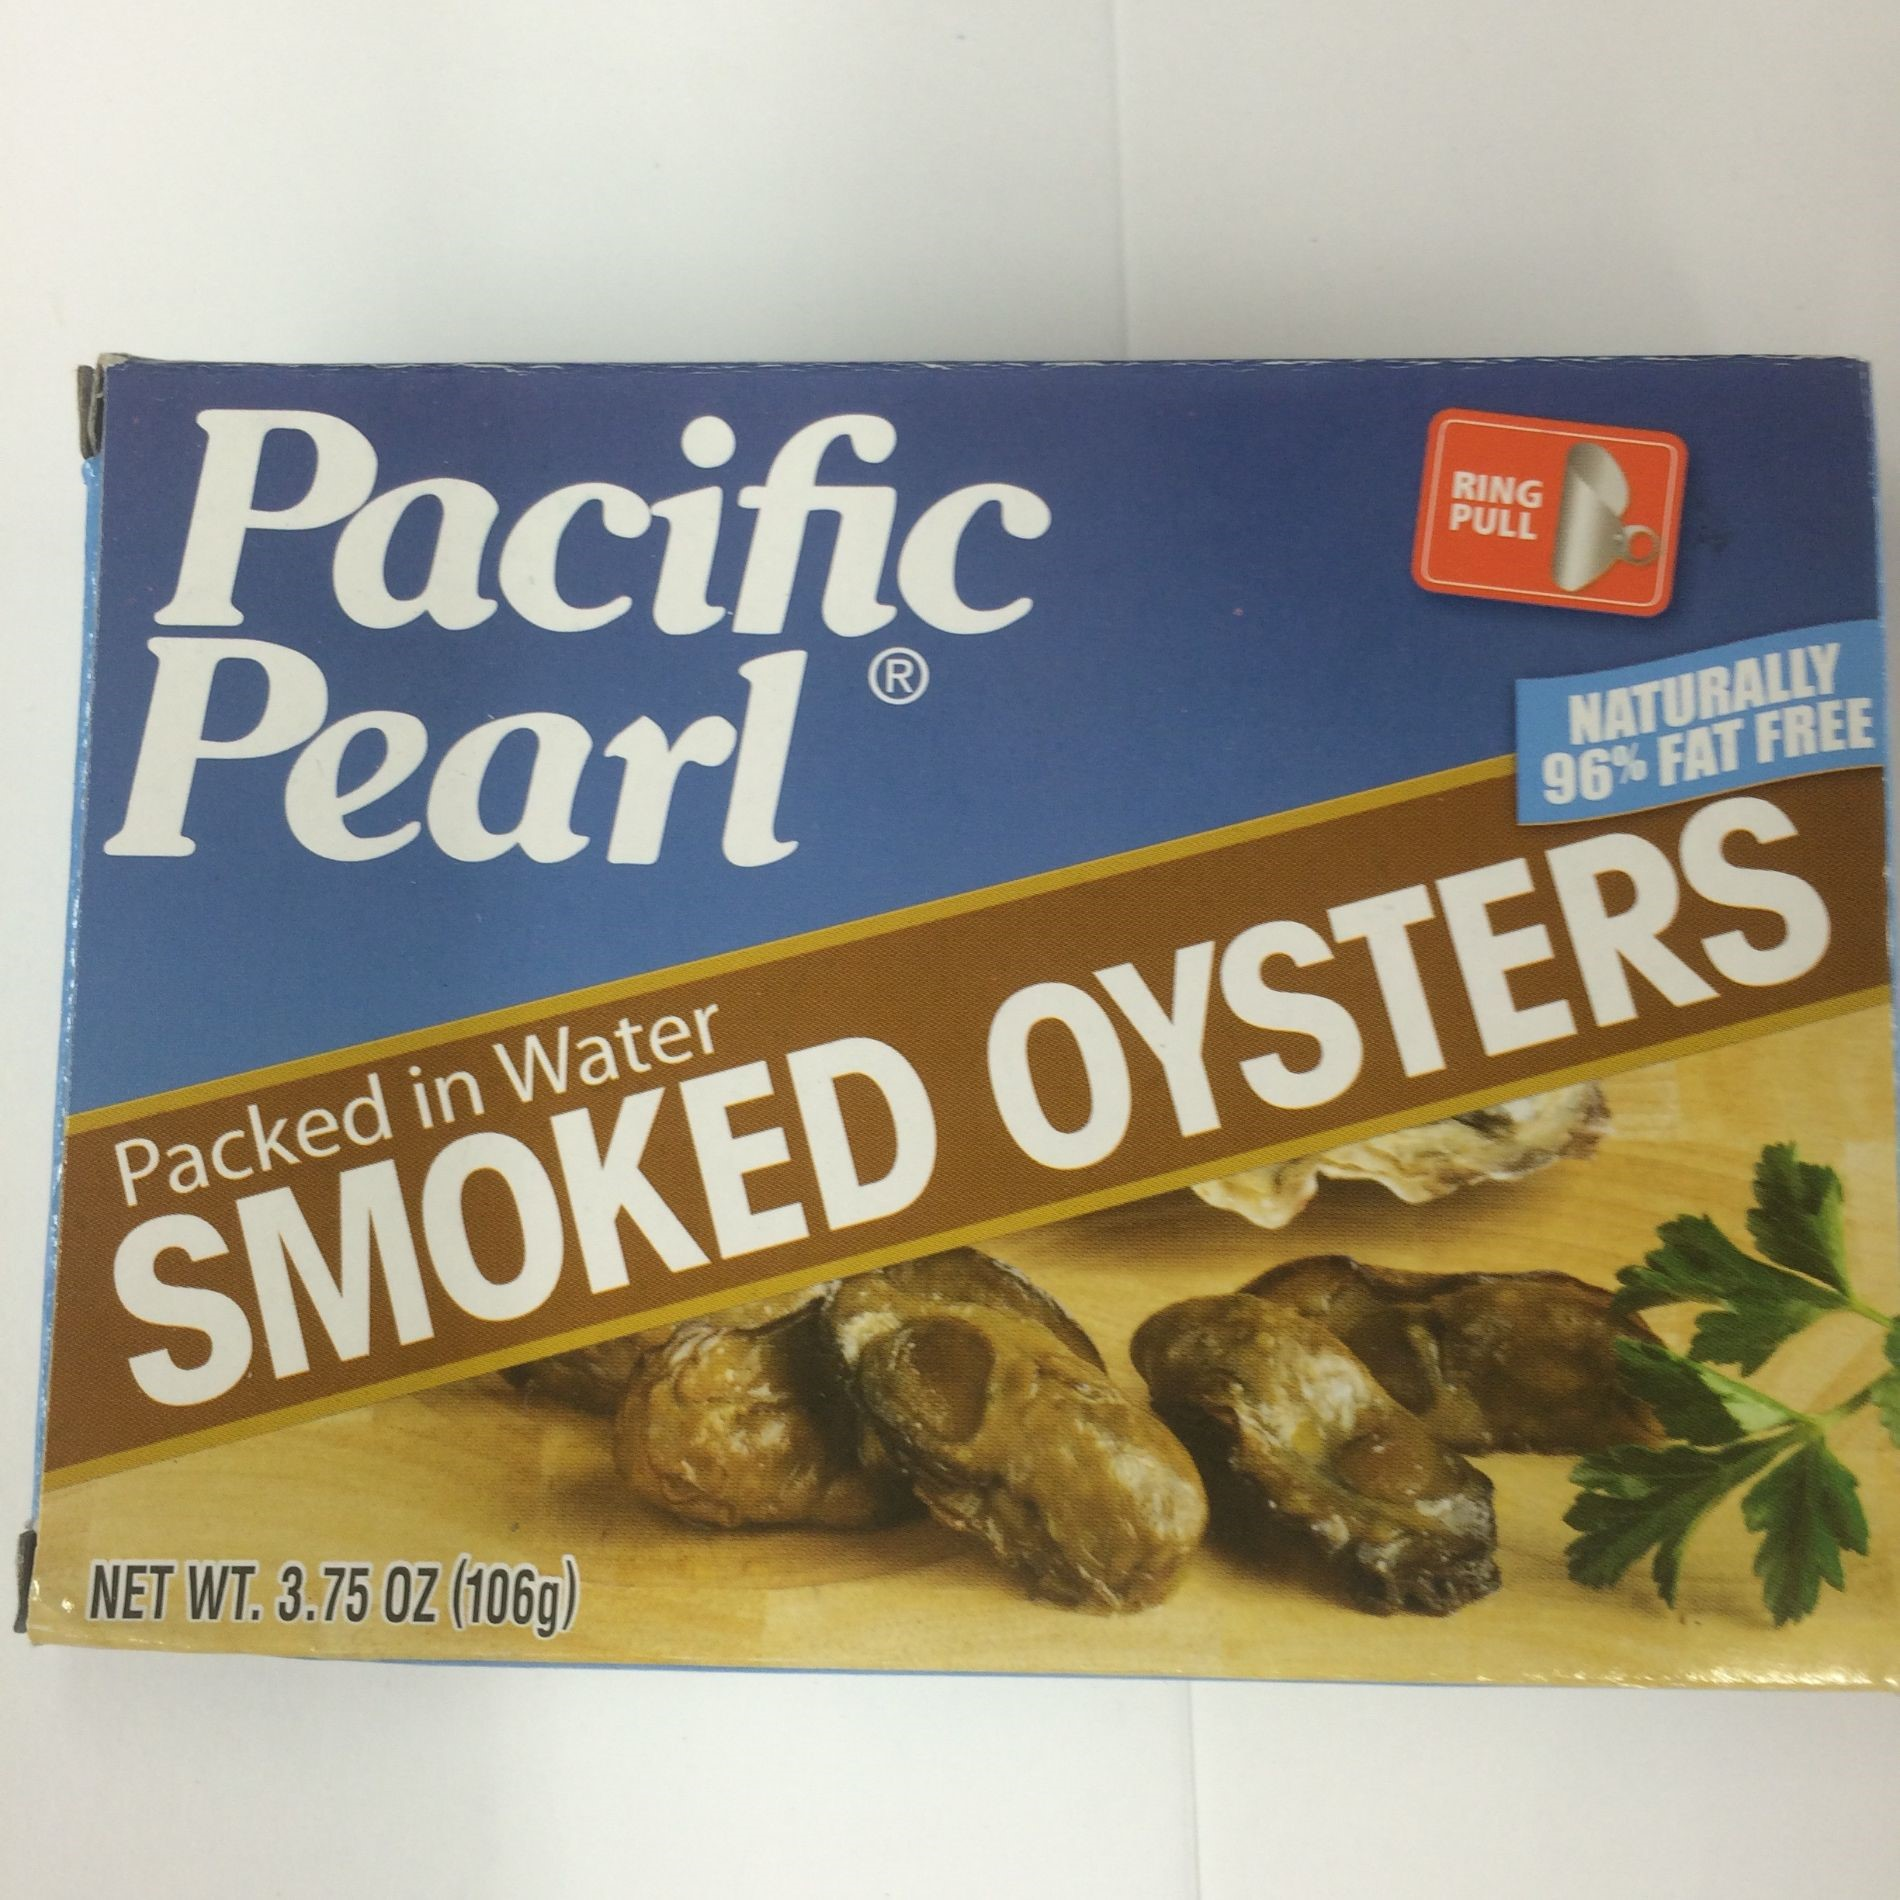 Chicken of the Sea Smoked Oysters, in Water, 3.75 Oz by The Union Group